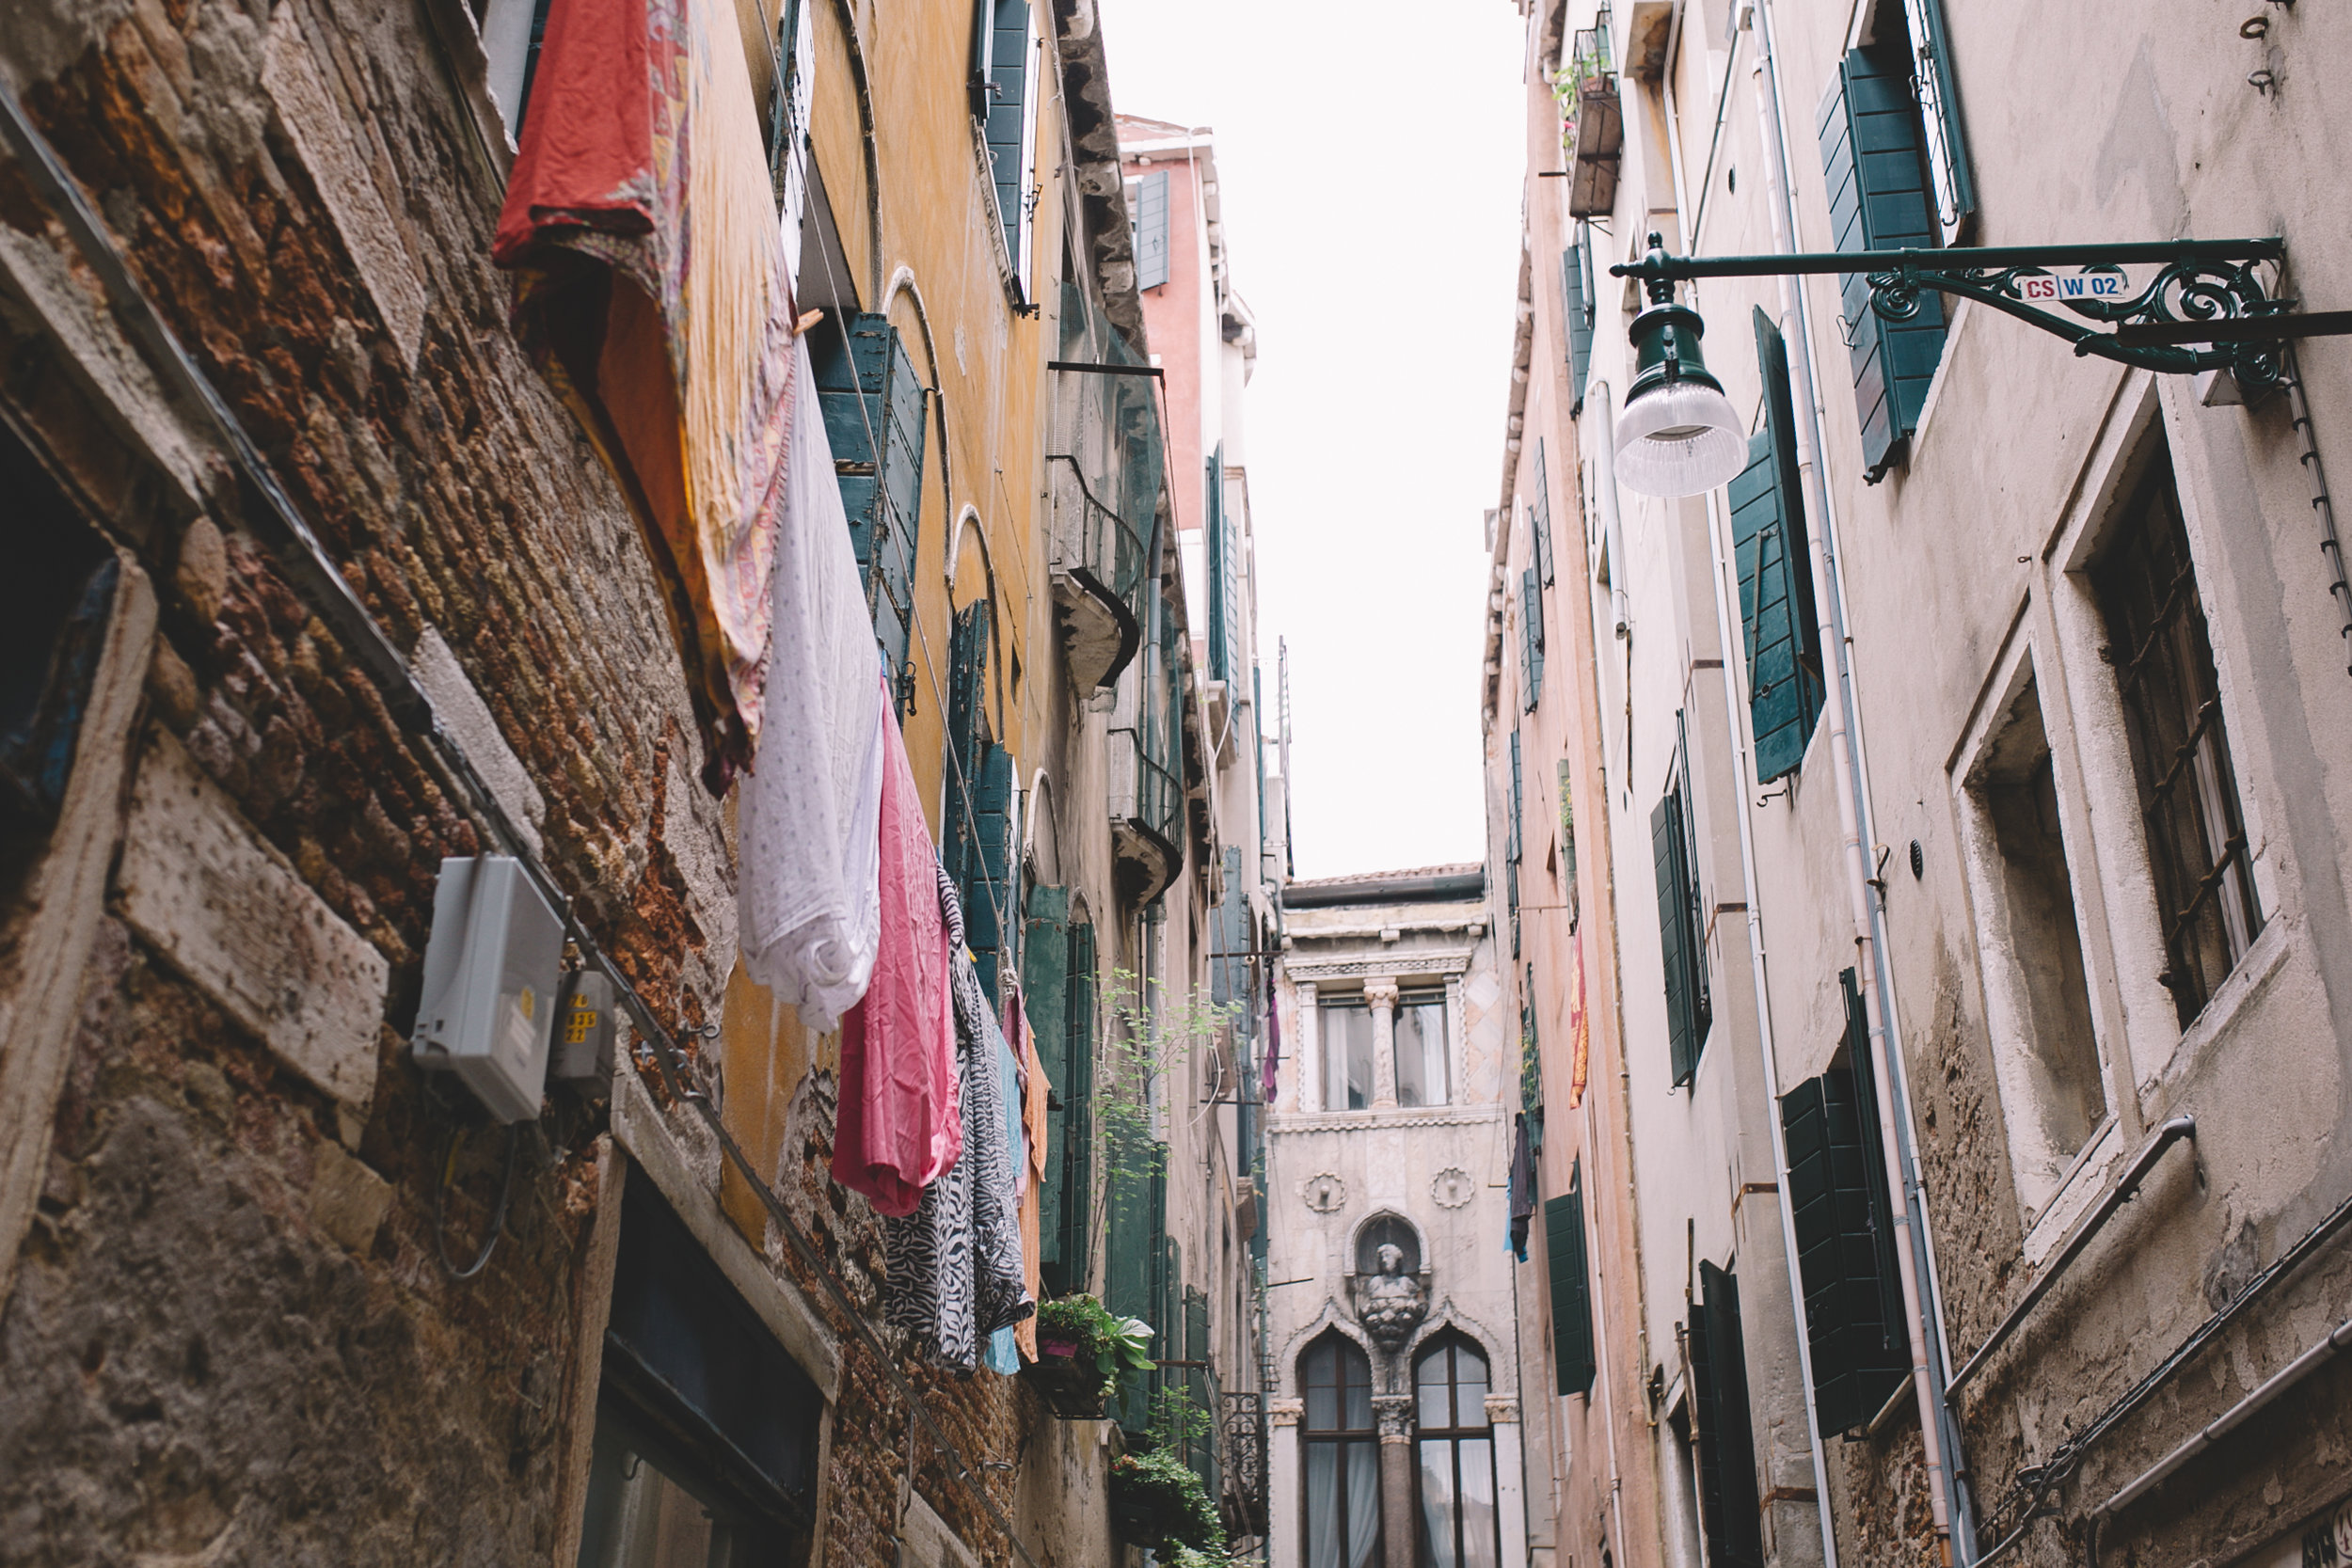 Blog Venice Italy Streets with Laundry  (5 of 5).jpg